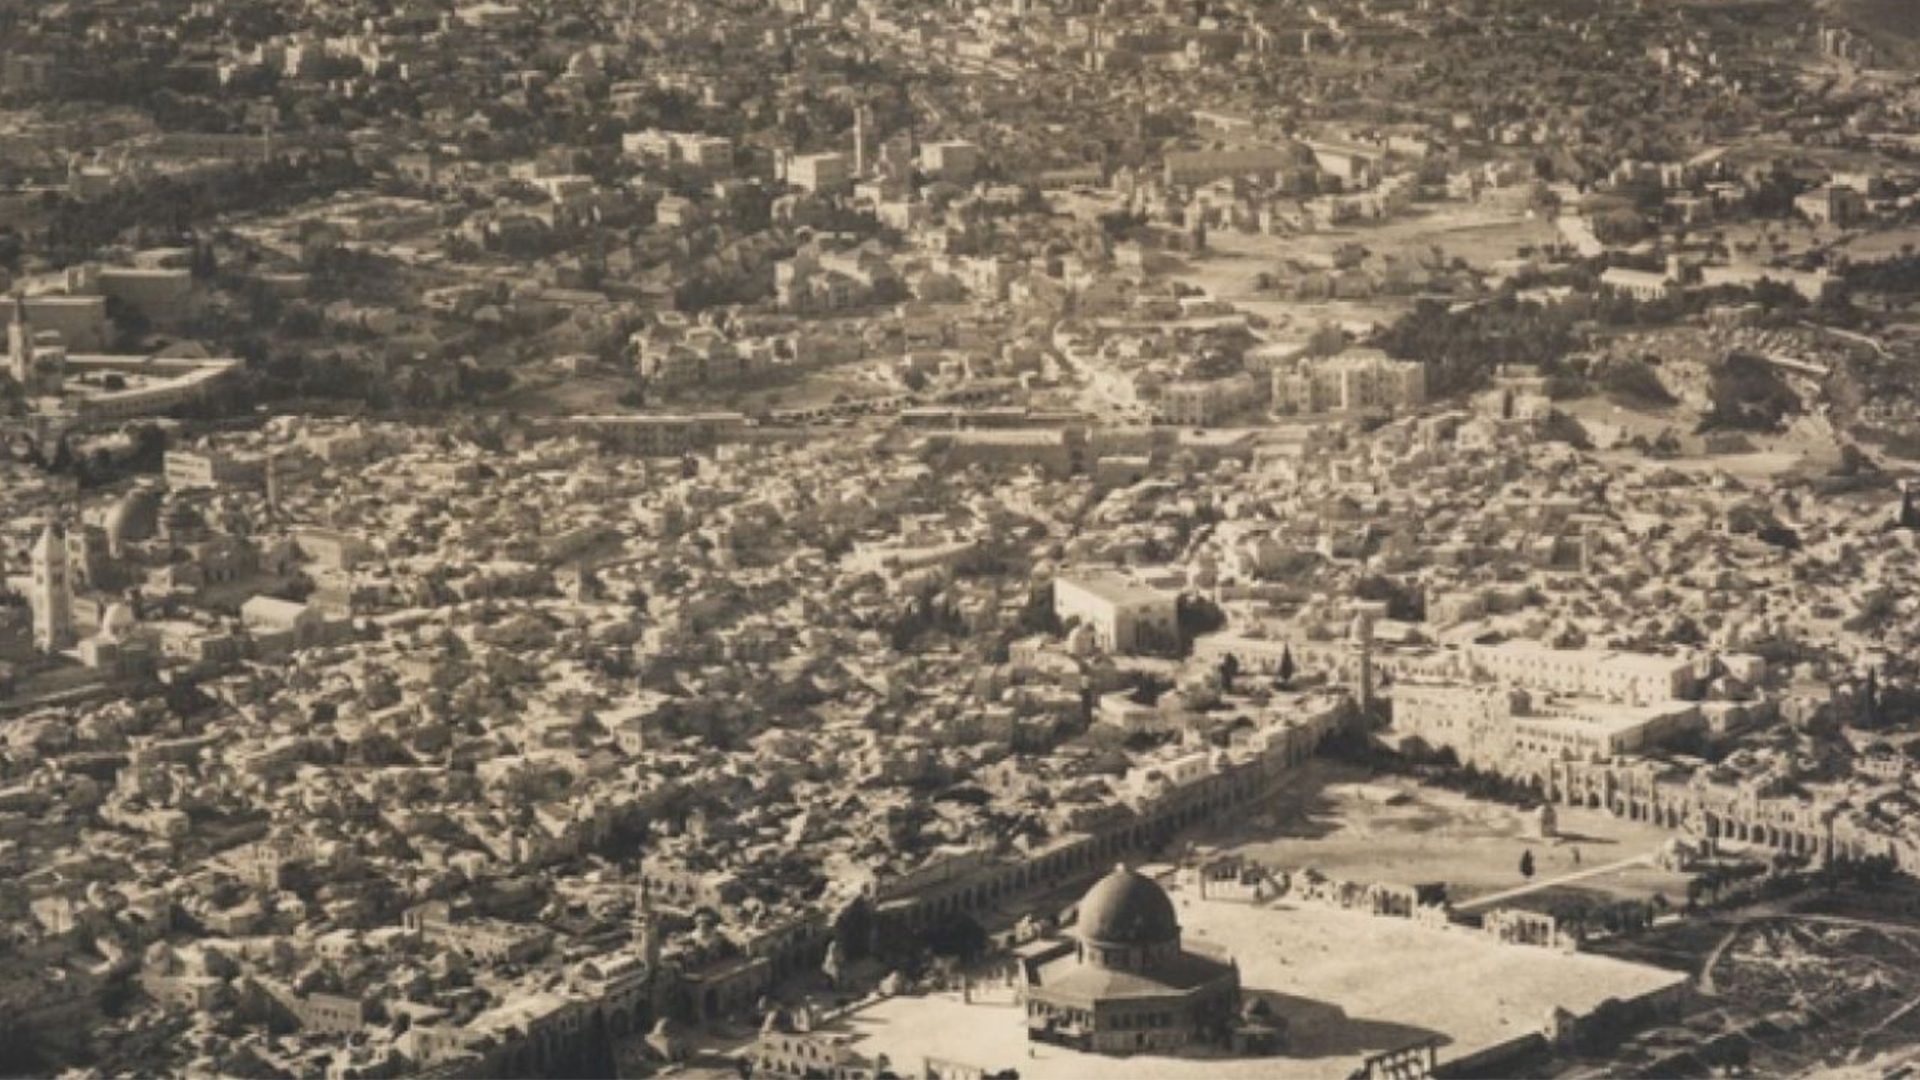 Palestine 1937 in Pictures